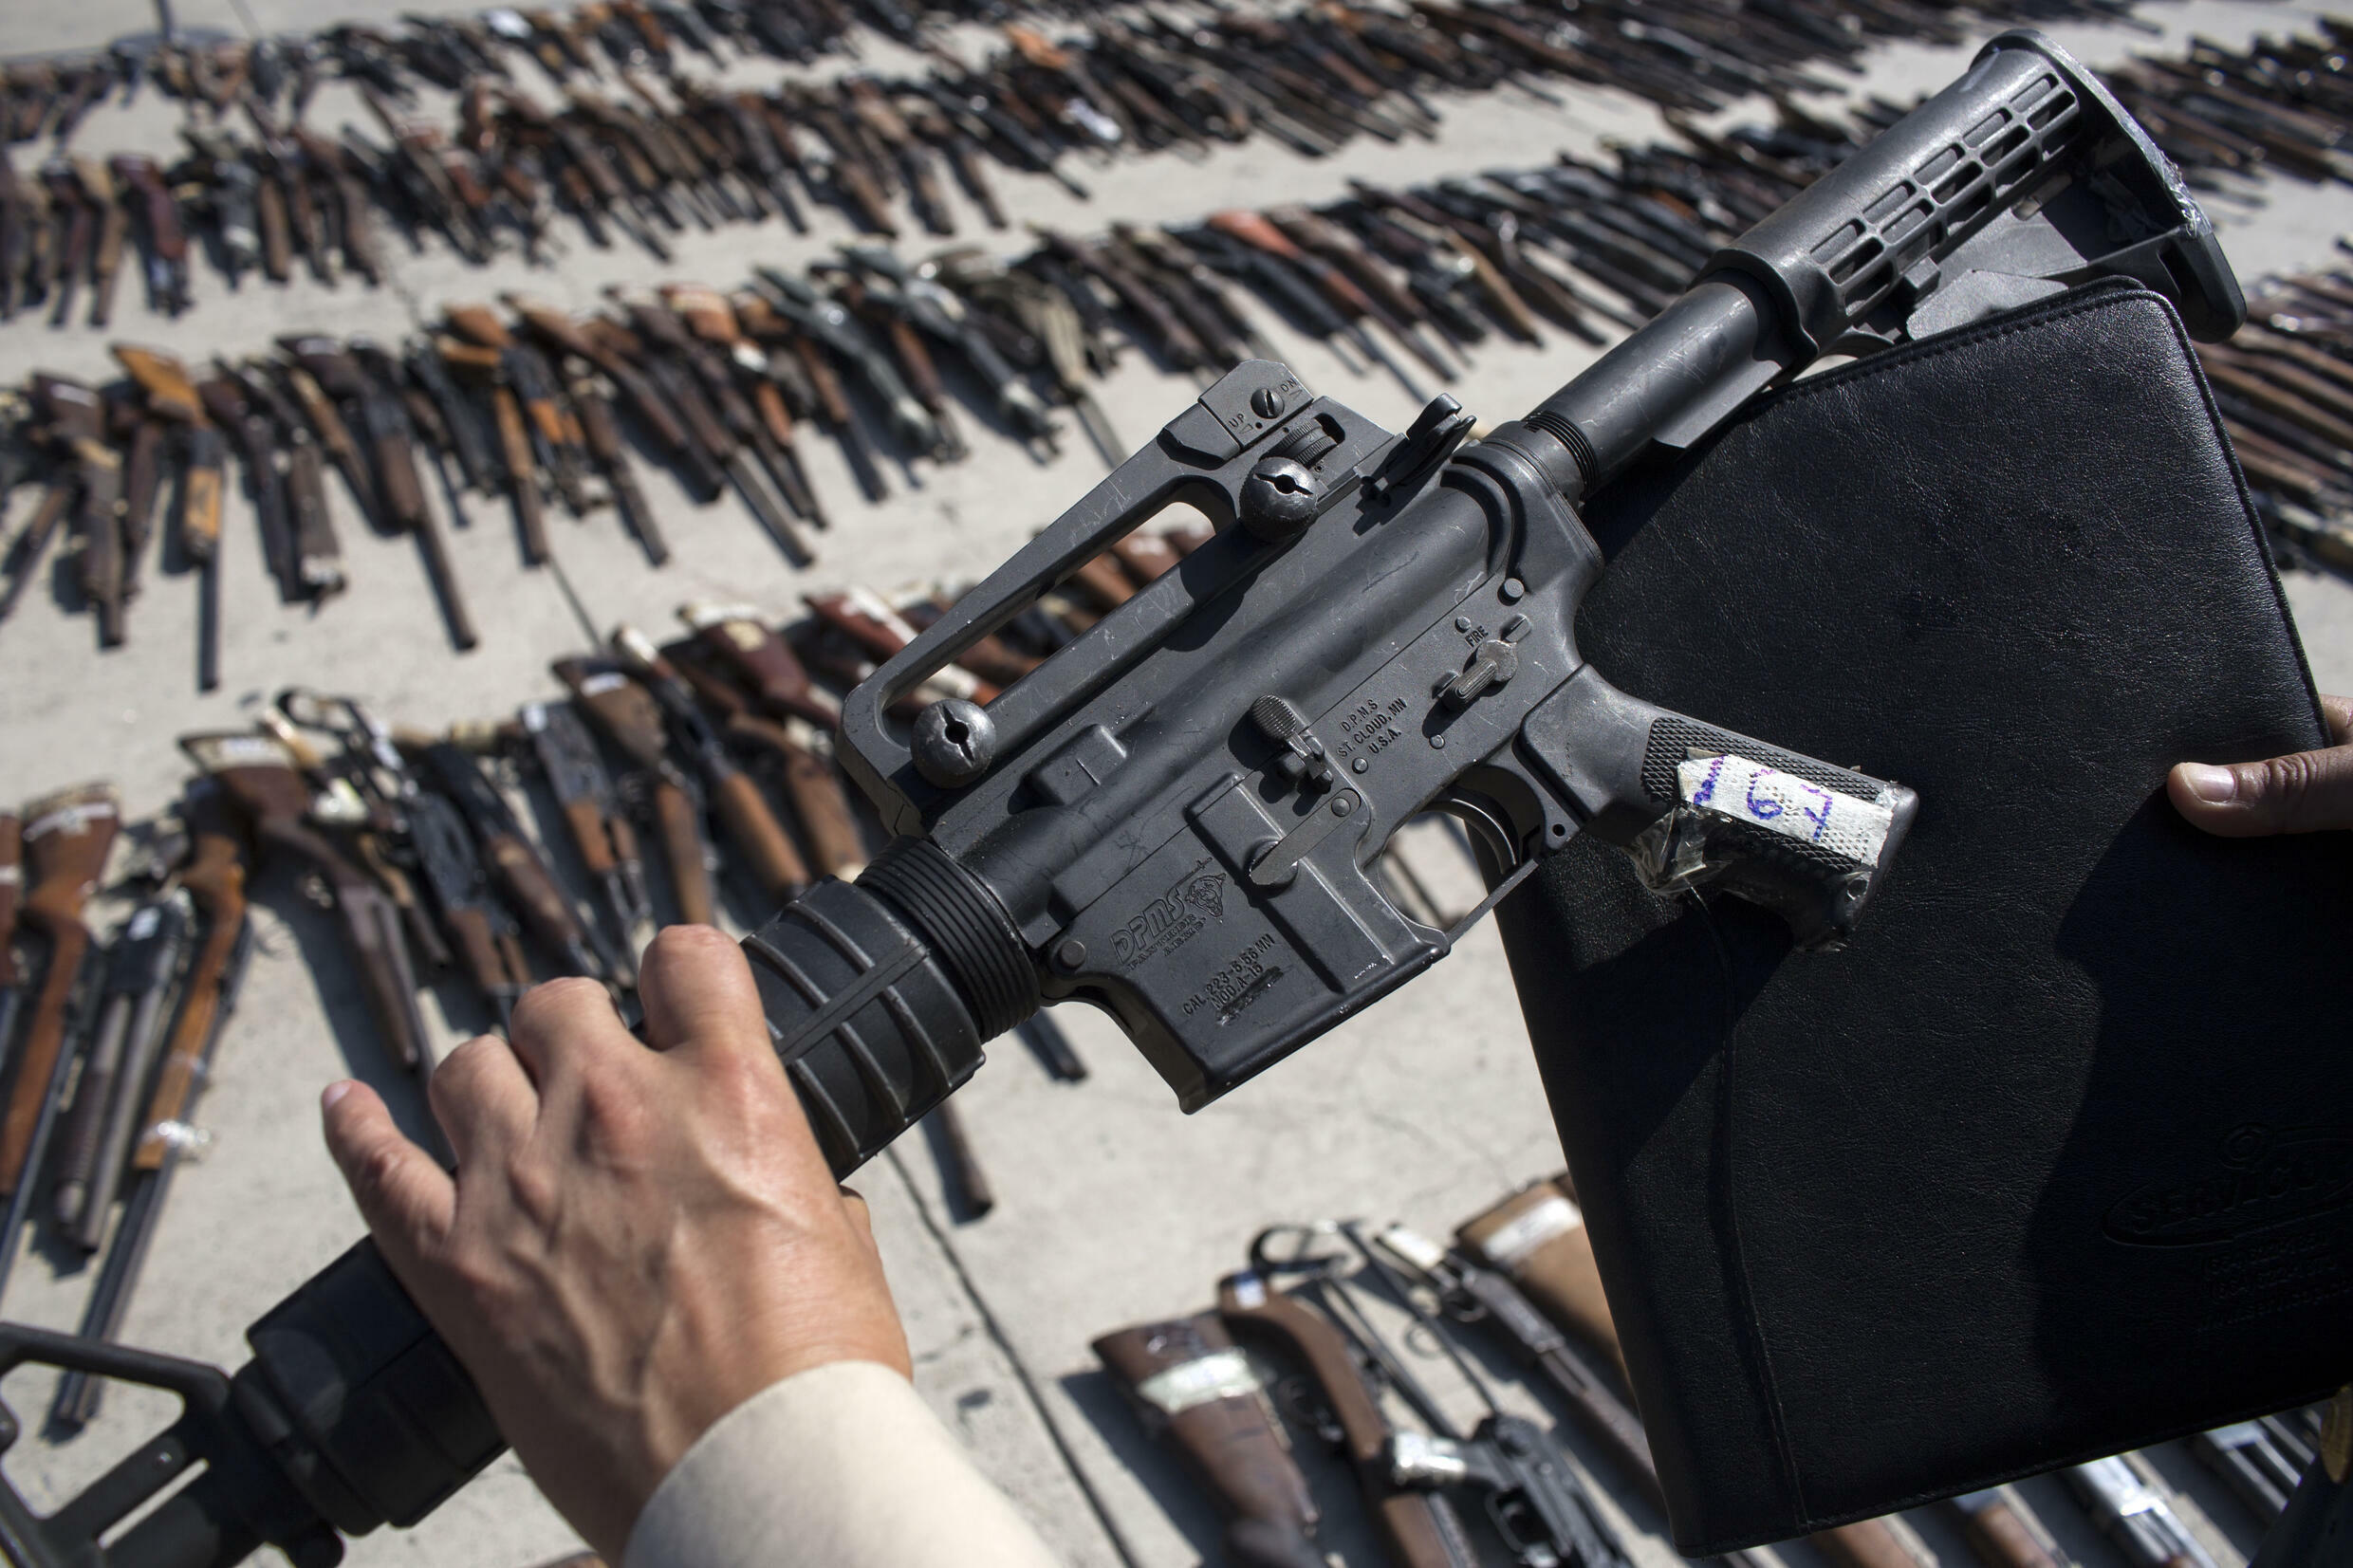 Seized weapons are seen at a Mexican military base in the border city of Tijuana before being destroyed